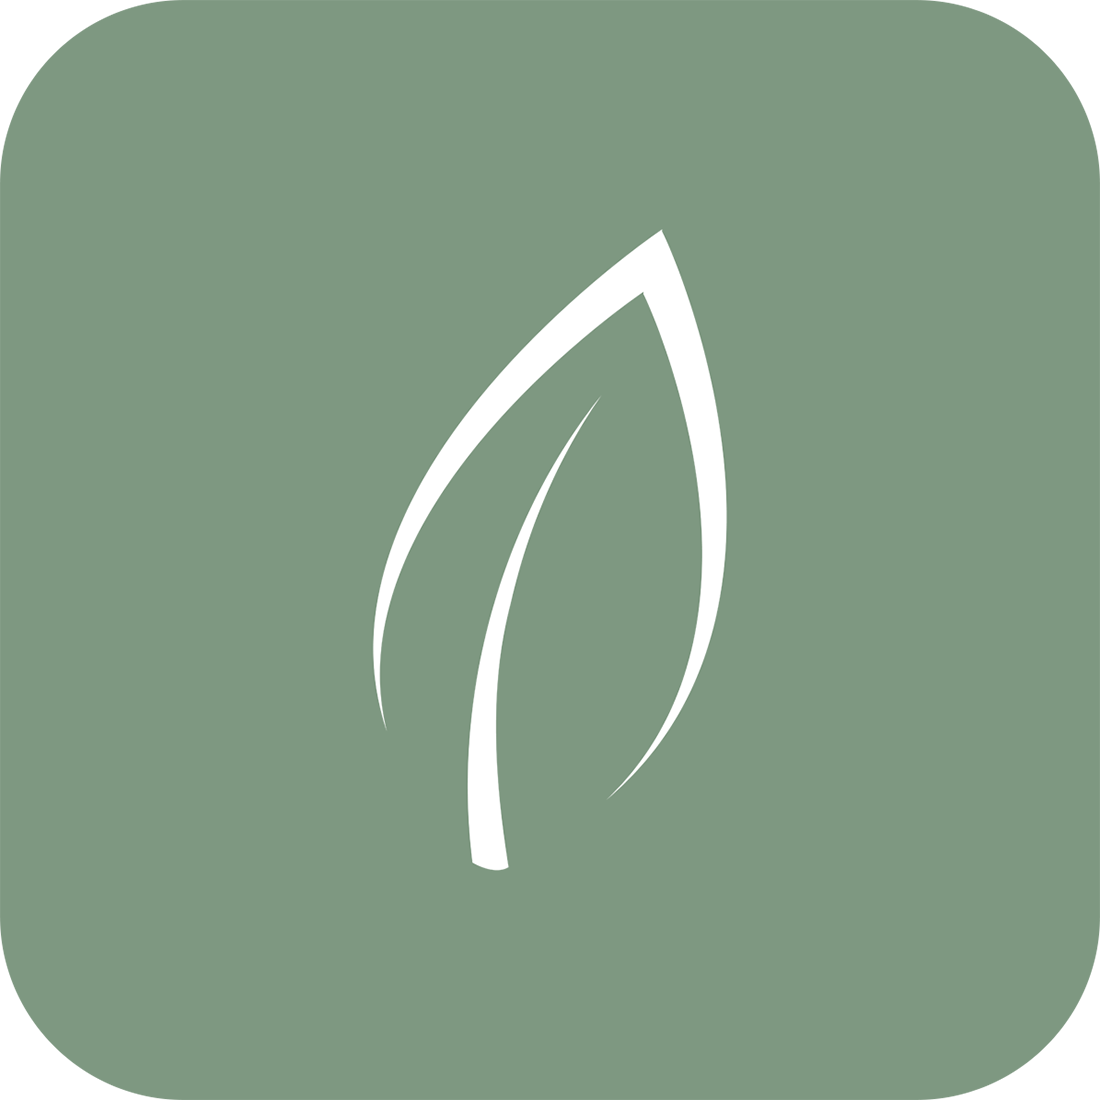 Give with the New Life App